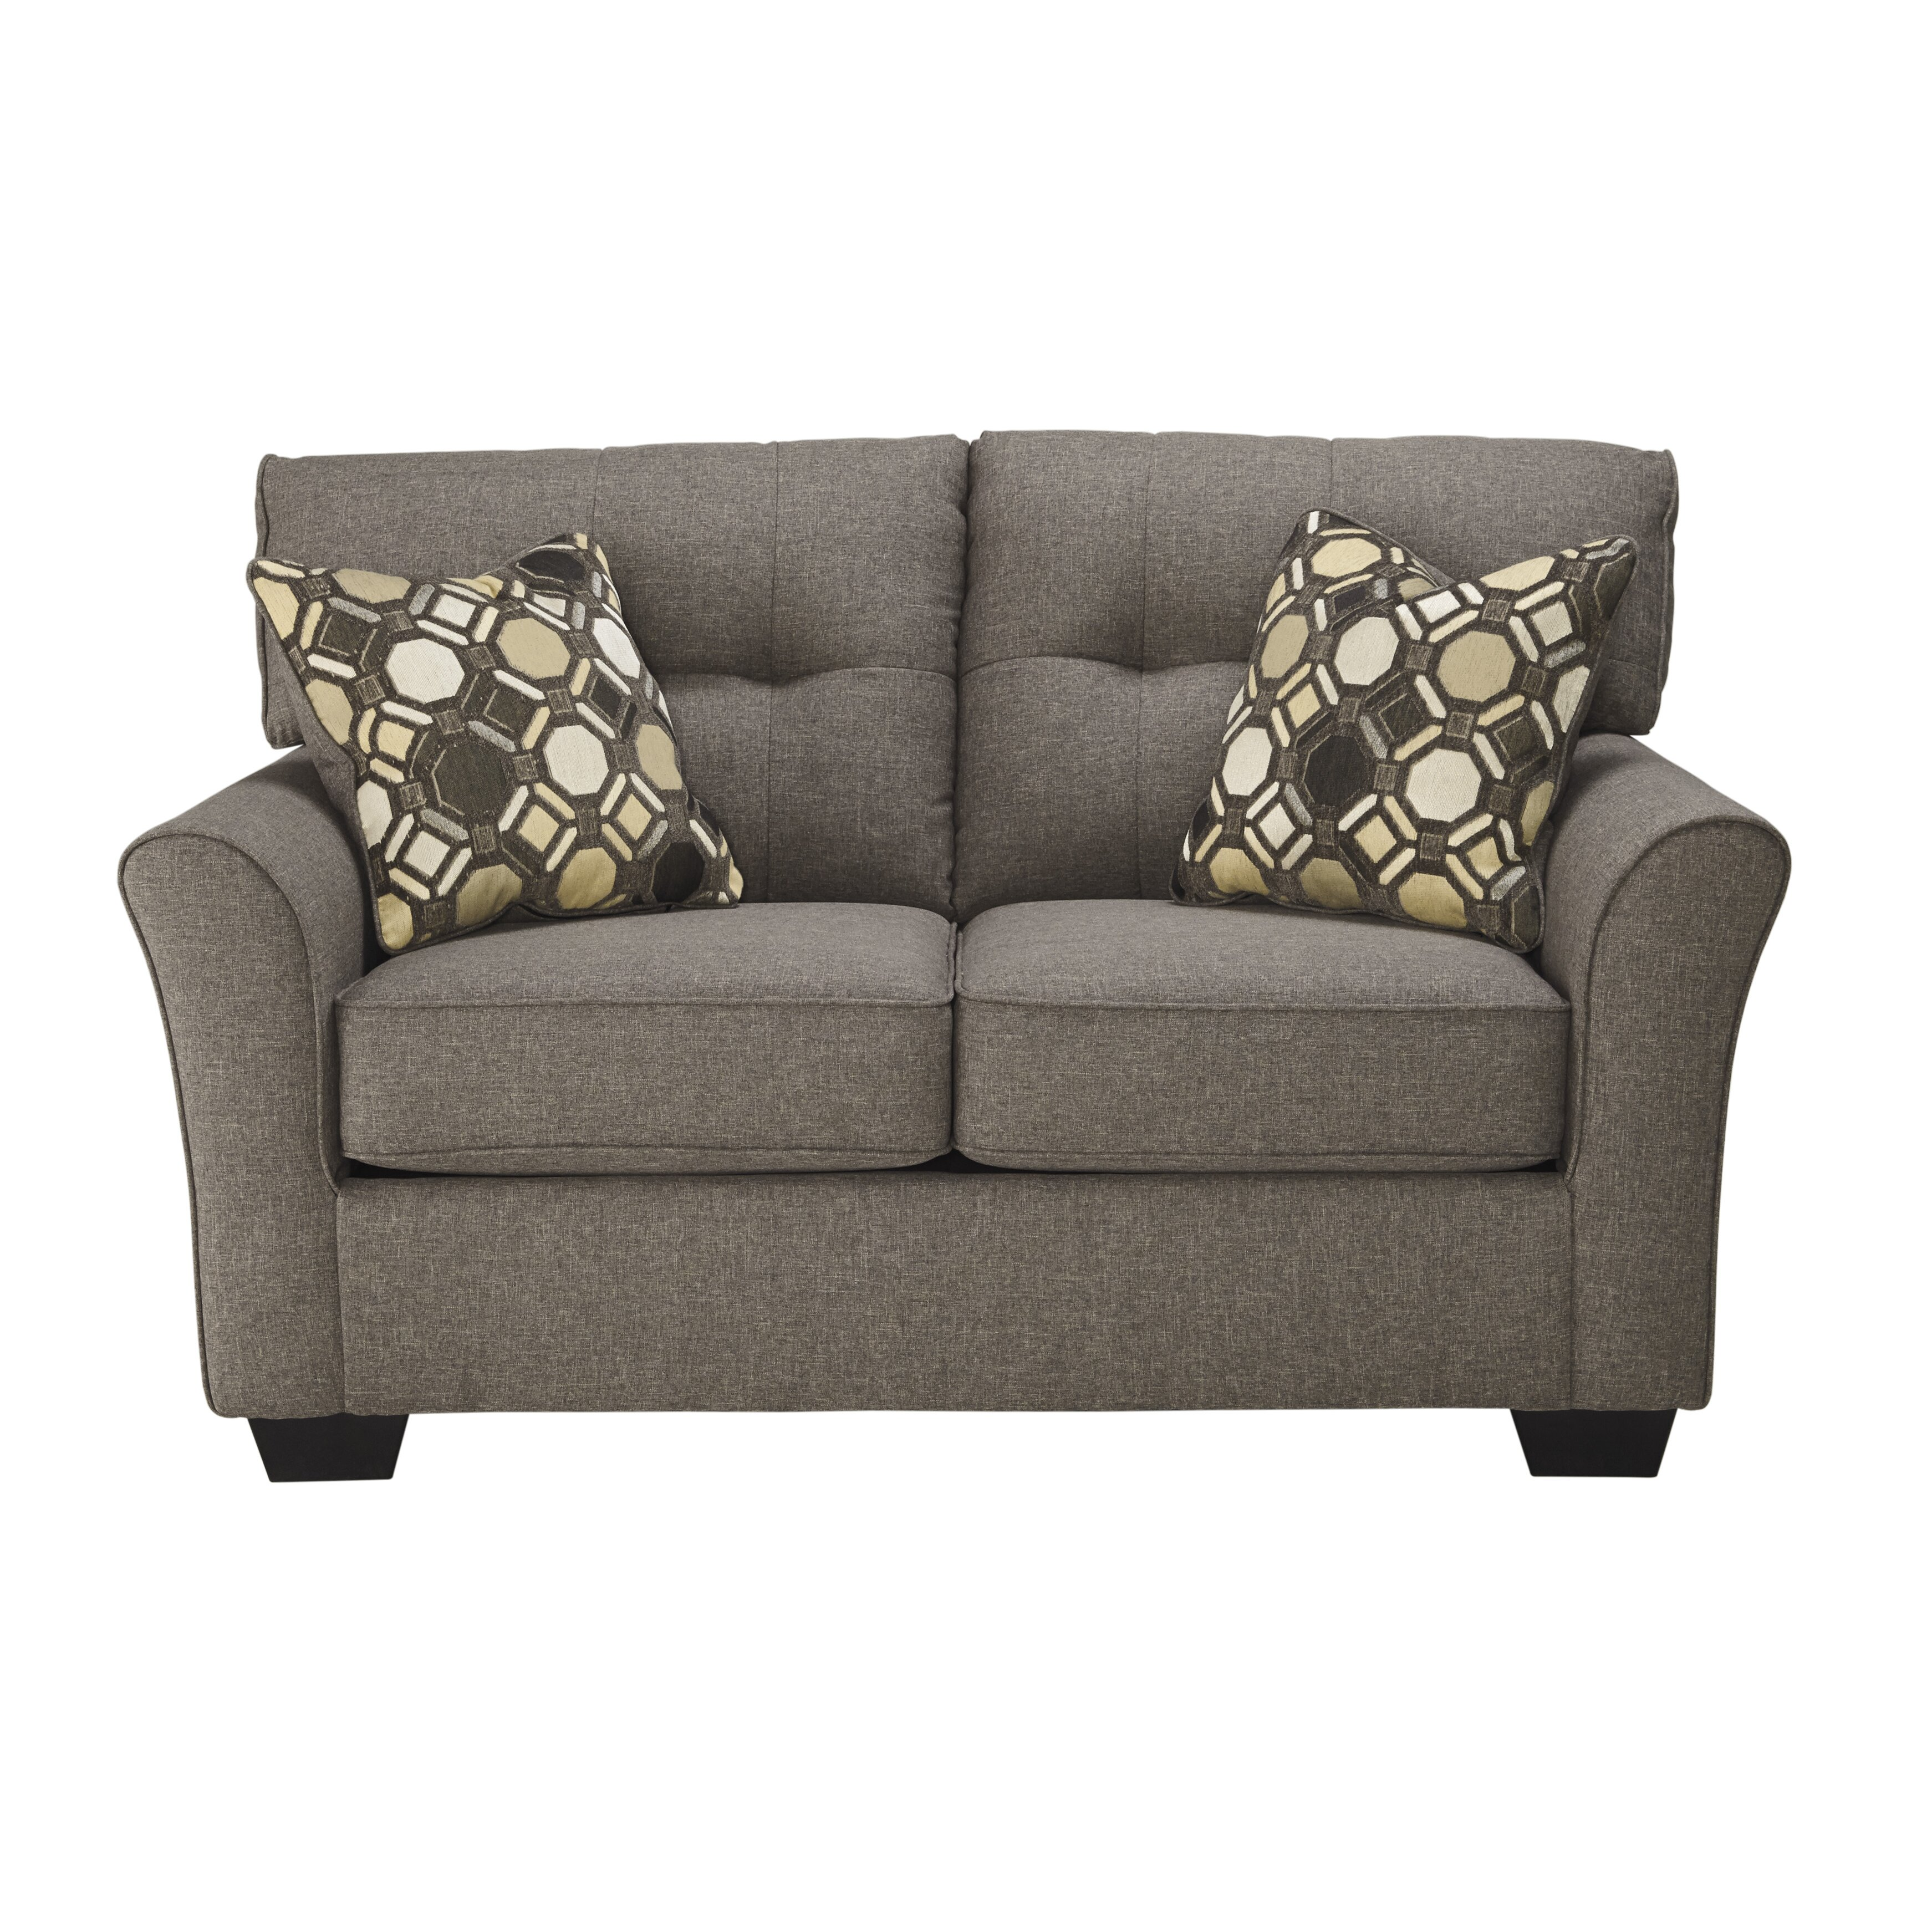 Ashley Signature Collection: Signature Design By Ashley Tibbee Living Room Collection